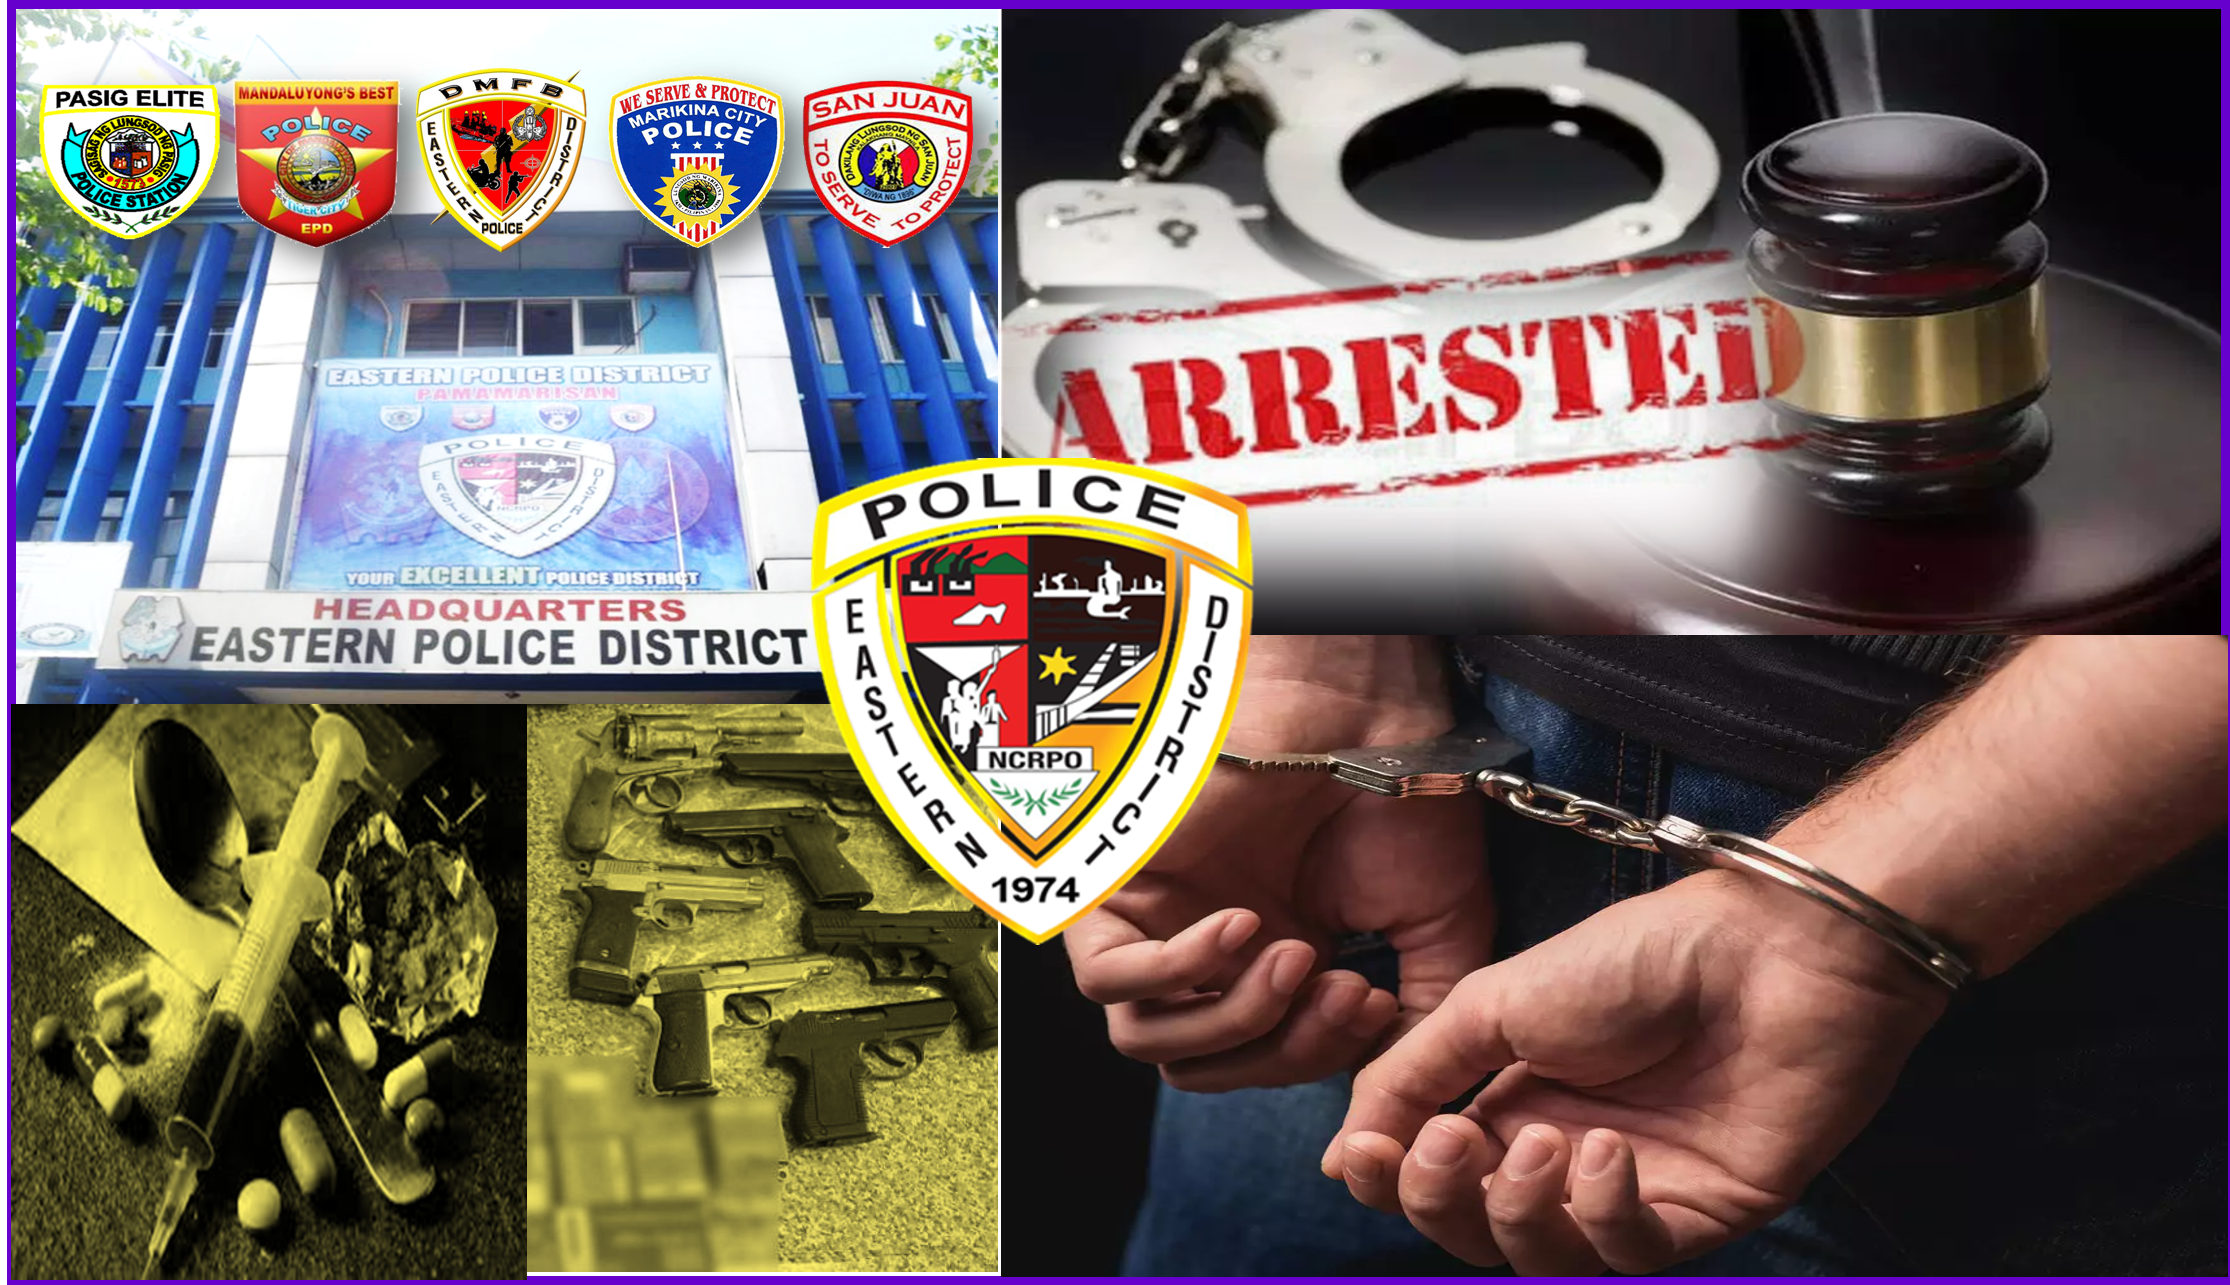 GUN RUNNING SUSPECT WAS ARRESTED BY PASIG CITY POLICE AND CIDG EASTERN NCR